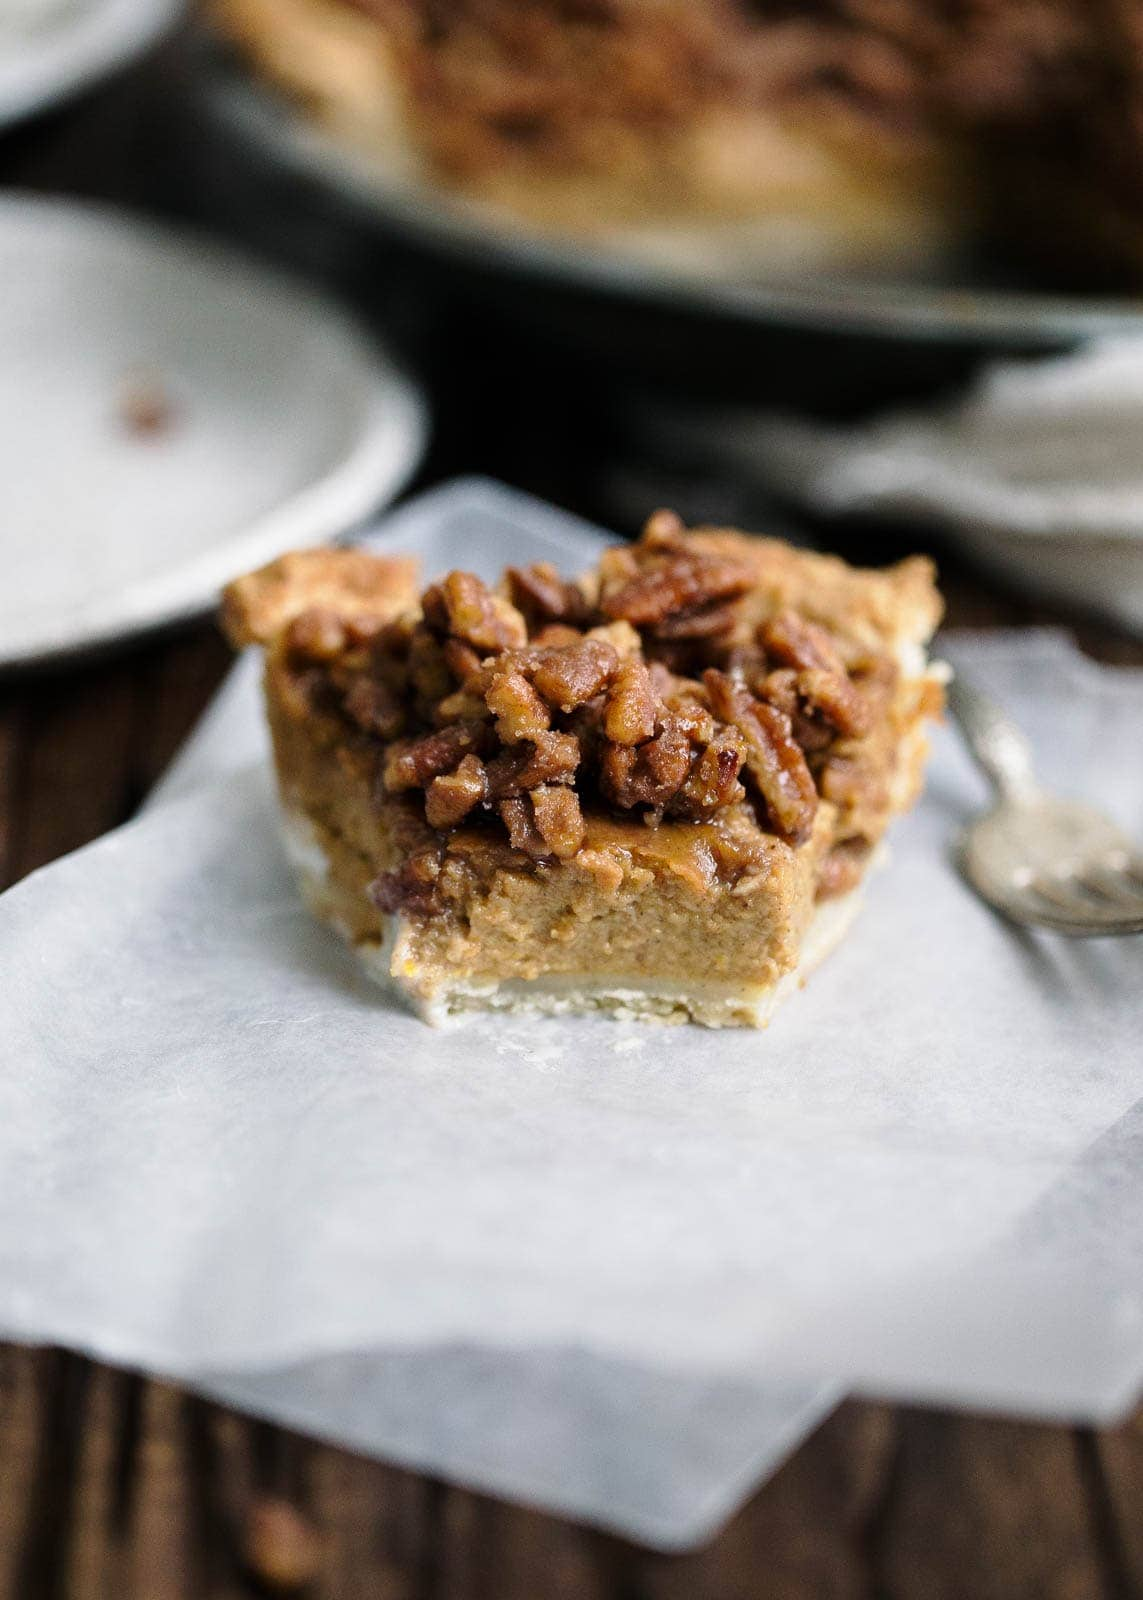 Maple pecans meet a boozy bourbon pumpkin filling in this maple bourbon pecan pumpkin pie worthy of any Thanksgiving dessert table.